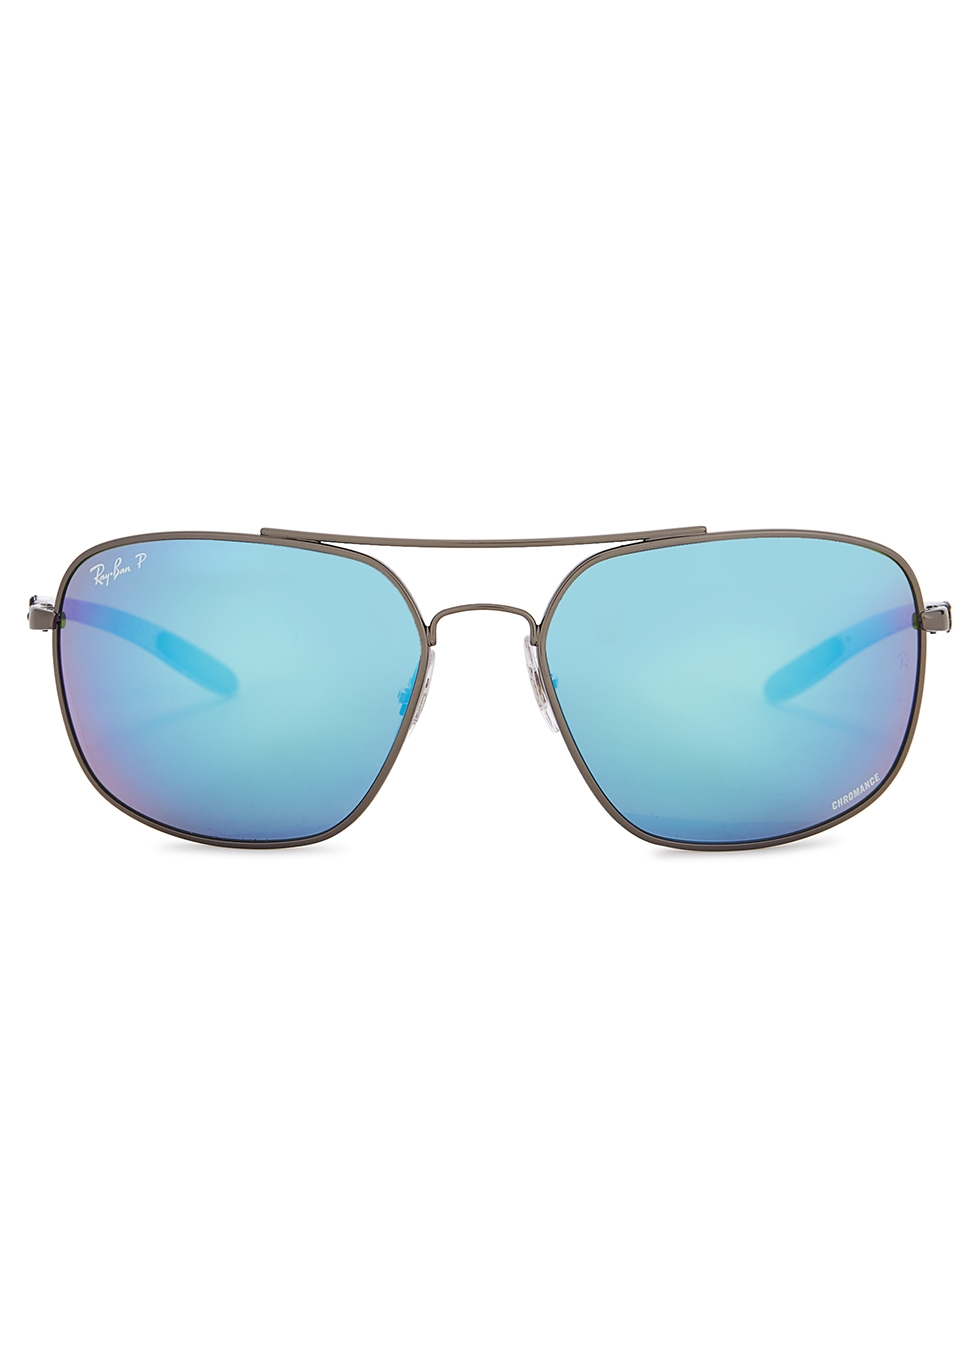 Aviator mirrored sunglasses - Ray-Ban